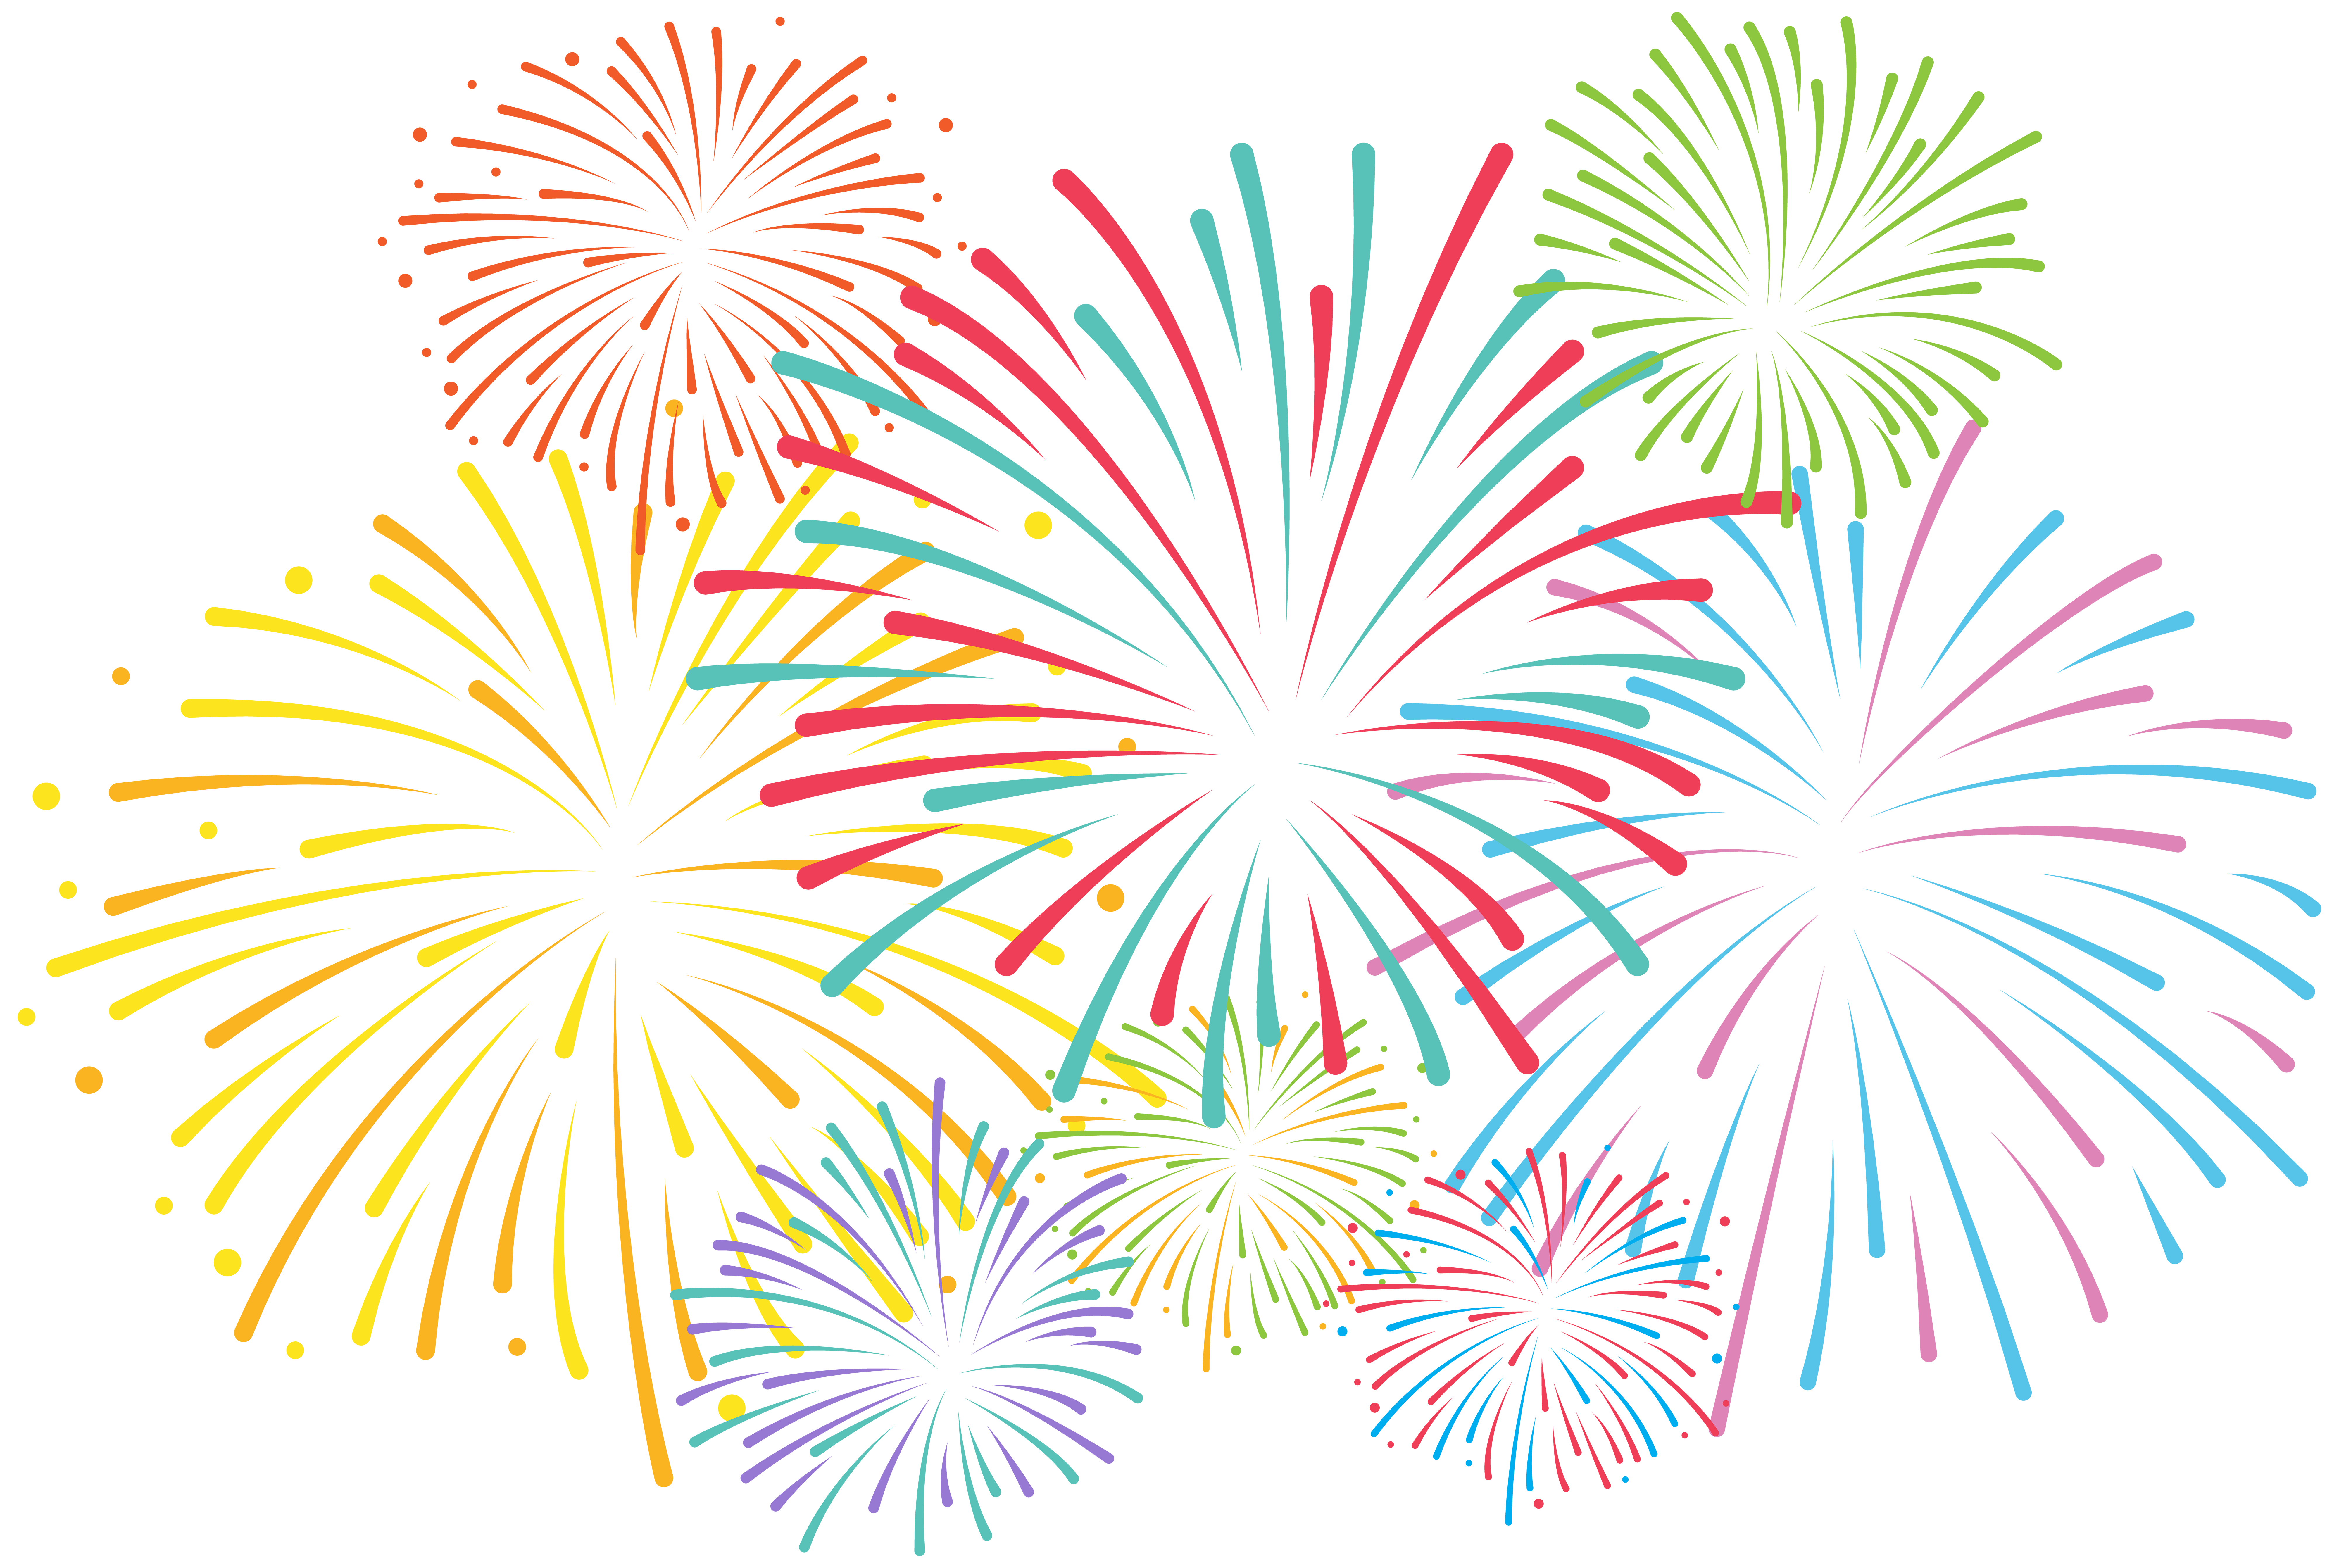 fireworks clipart fireworks animation animated clipart fire image social media art  [ 8000 x 5363 Pixel ]